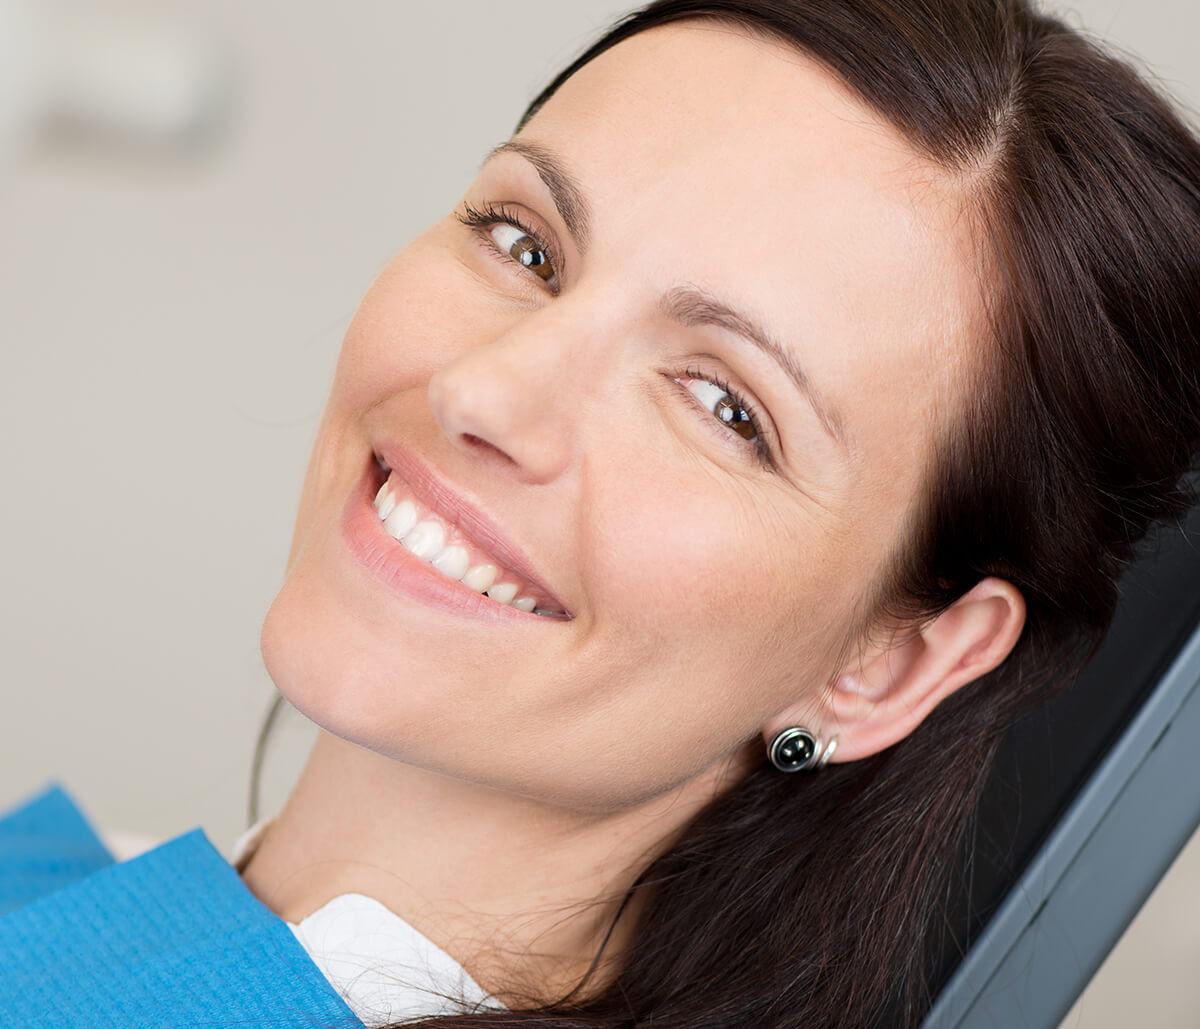 TMJ Disorder Treatment Options at Derry Dental Care in Milton ON Area